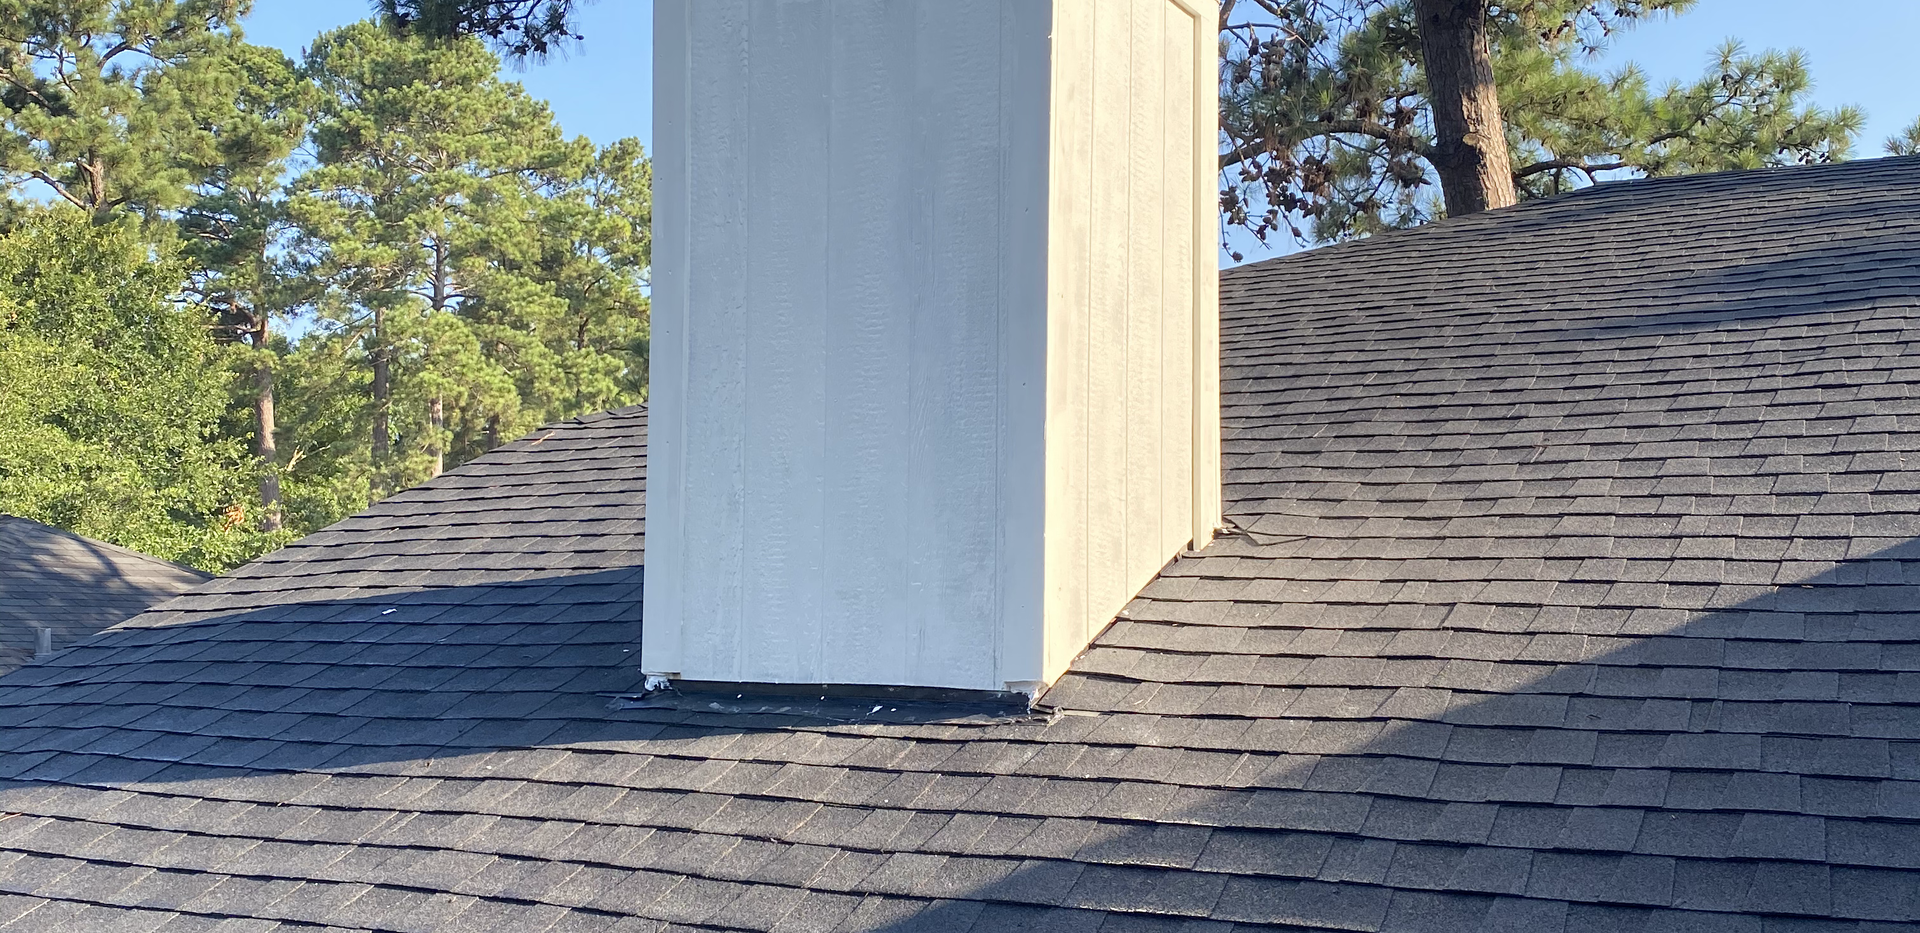 CHIMNEY REPLACED